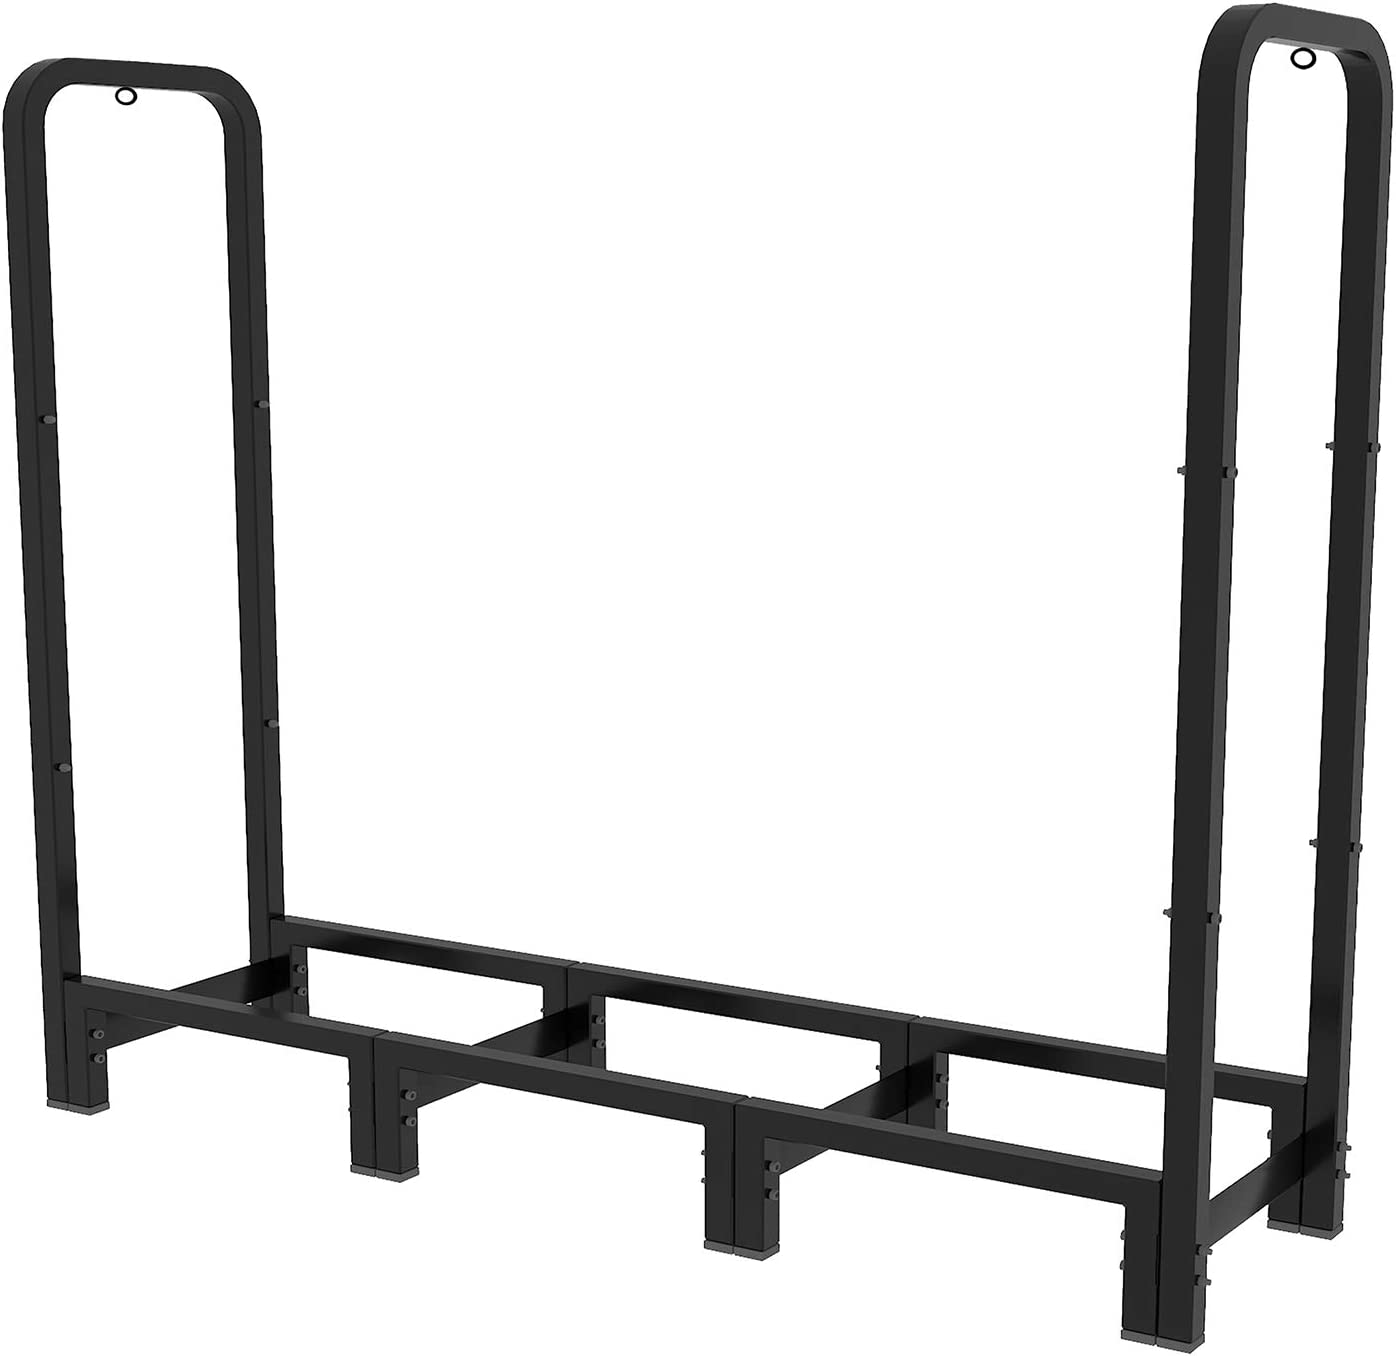 Artibear 4ft Outdoor Firewood Rack, Upgraded Adjustable Heavy Duty Logs Stand Stacker Holder for Fireplace - Metal Lumber Storage Carrier Organizer, Black